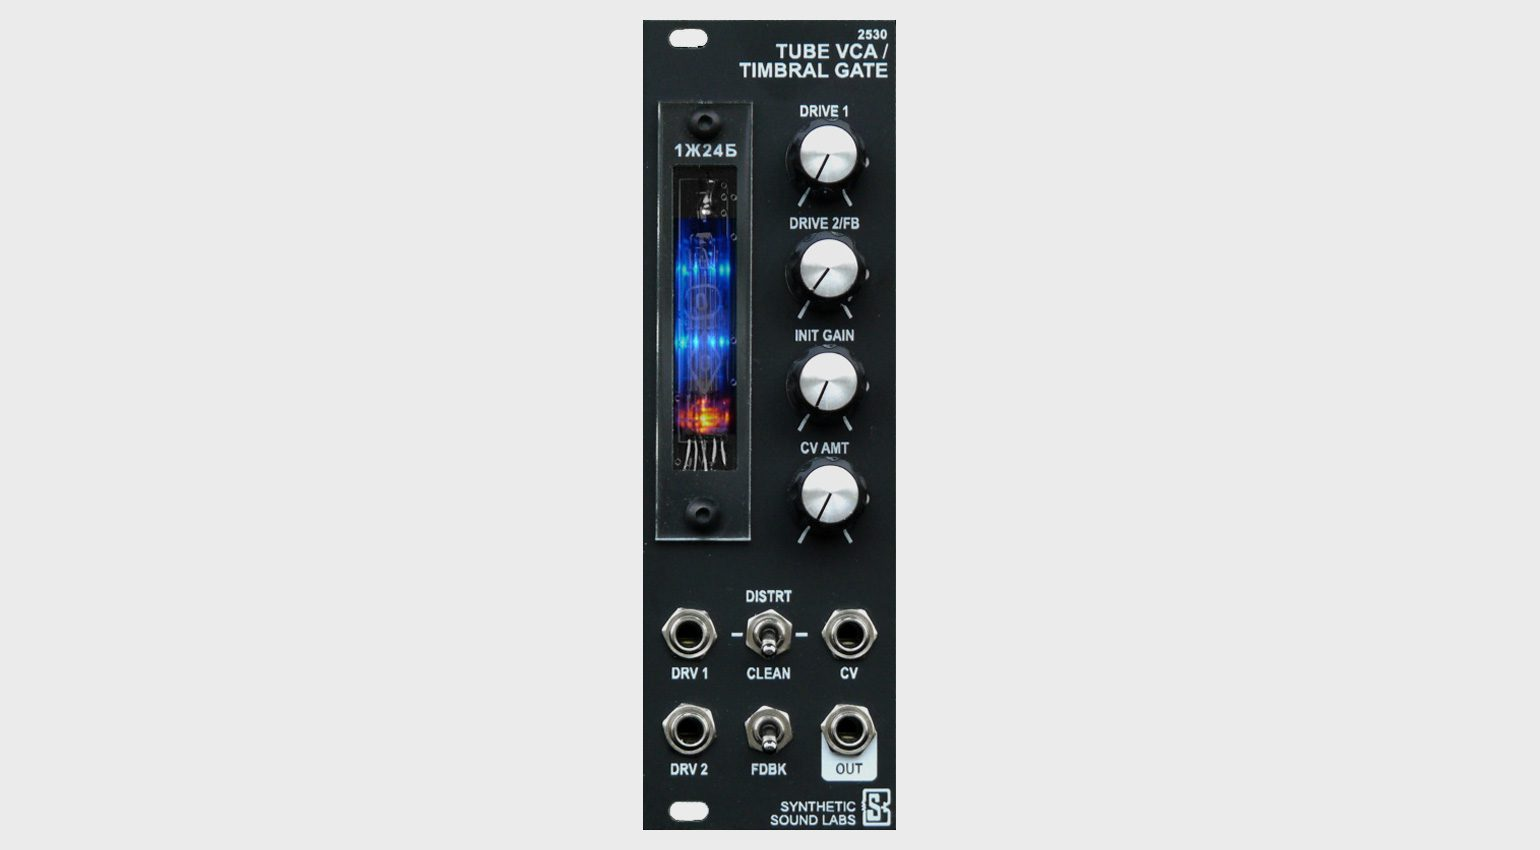 Synthetic Sound Labs Model 2530